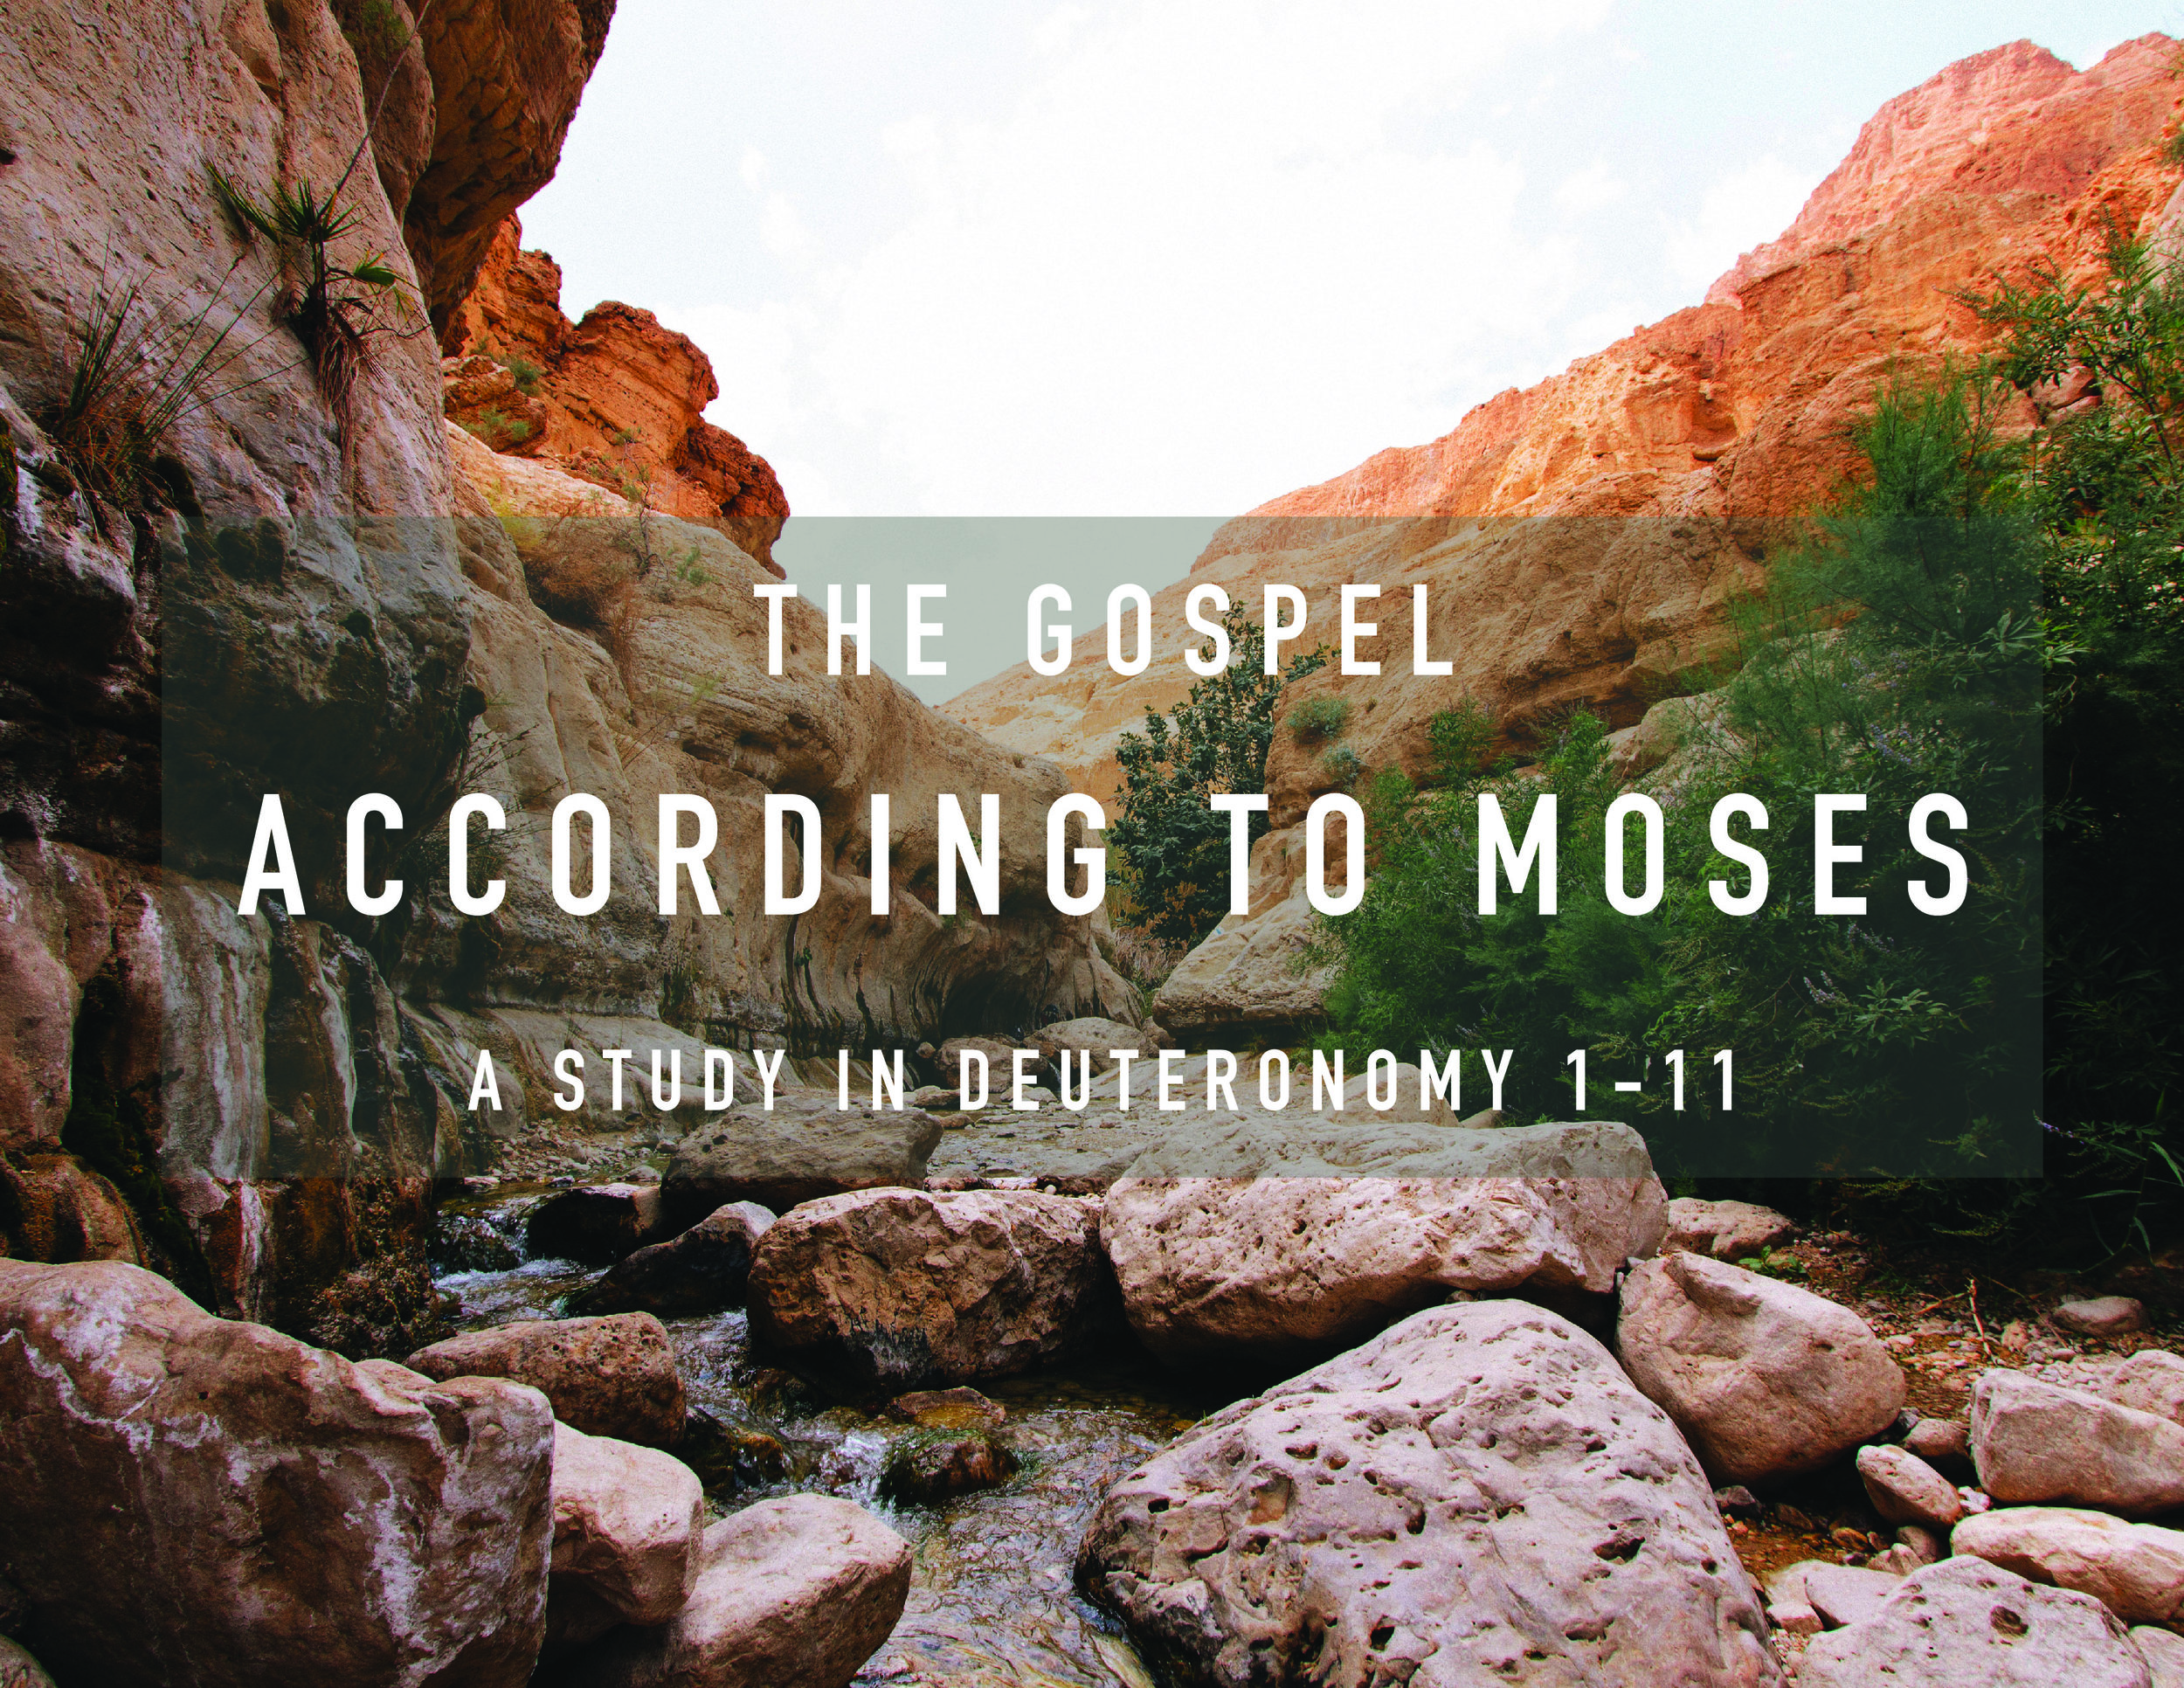 current sermon series - Join us on Sunday mornings and click the button below to participate in our study in Deuteronomy 1-11.